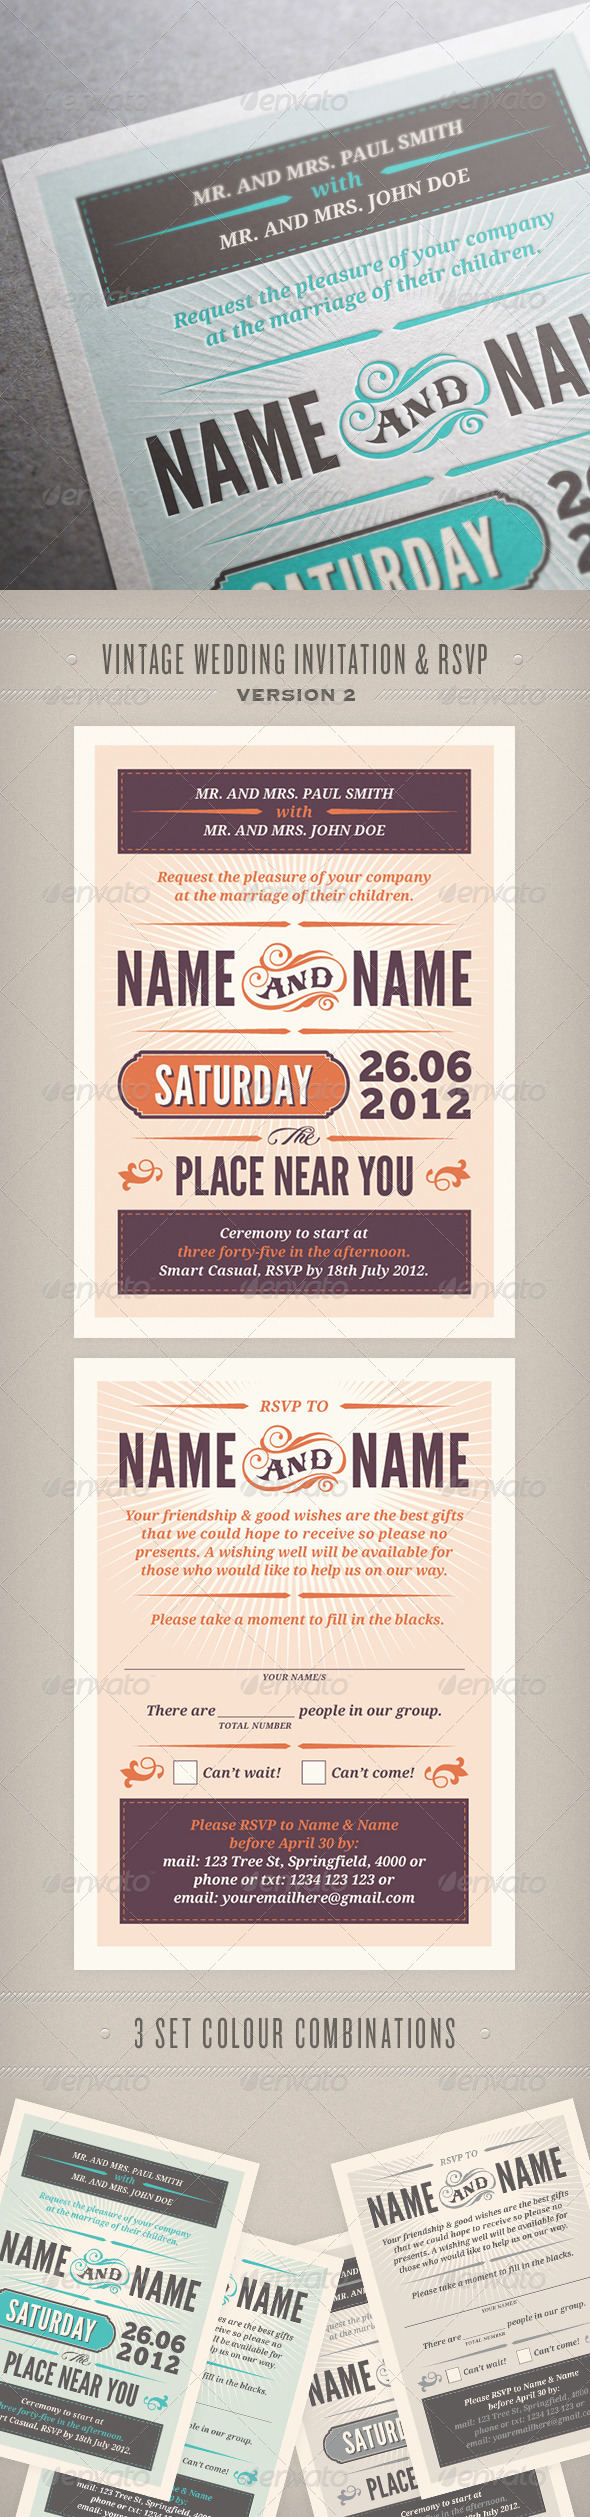 Rustic Wedding Invitation & RSVP - Weddings Cards & Invites